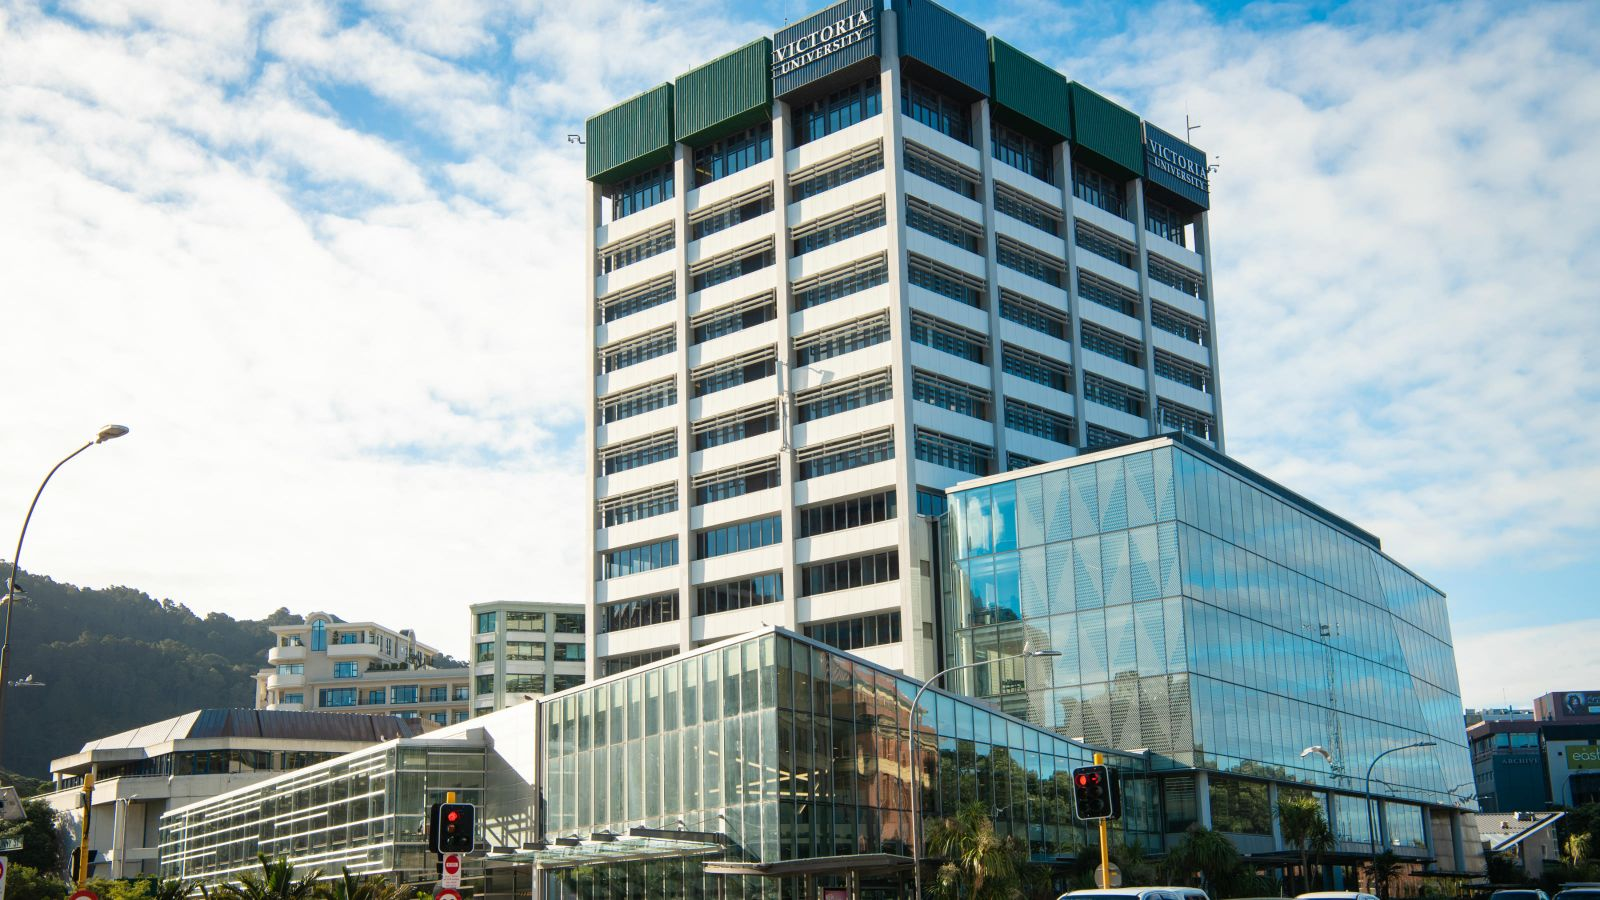 A view of Victoria University of Wellington's Rutherford House building from the street.